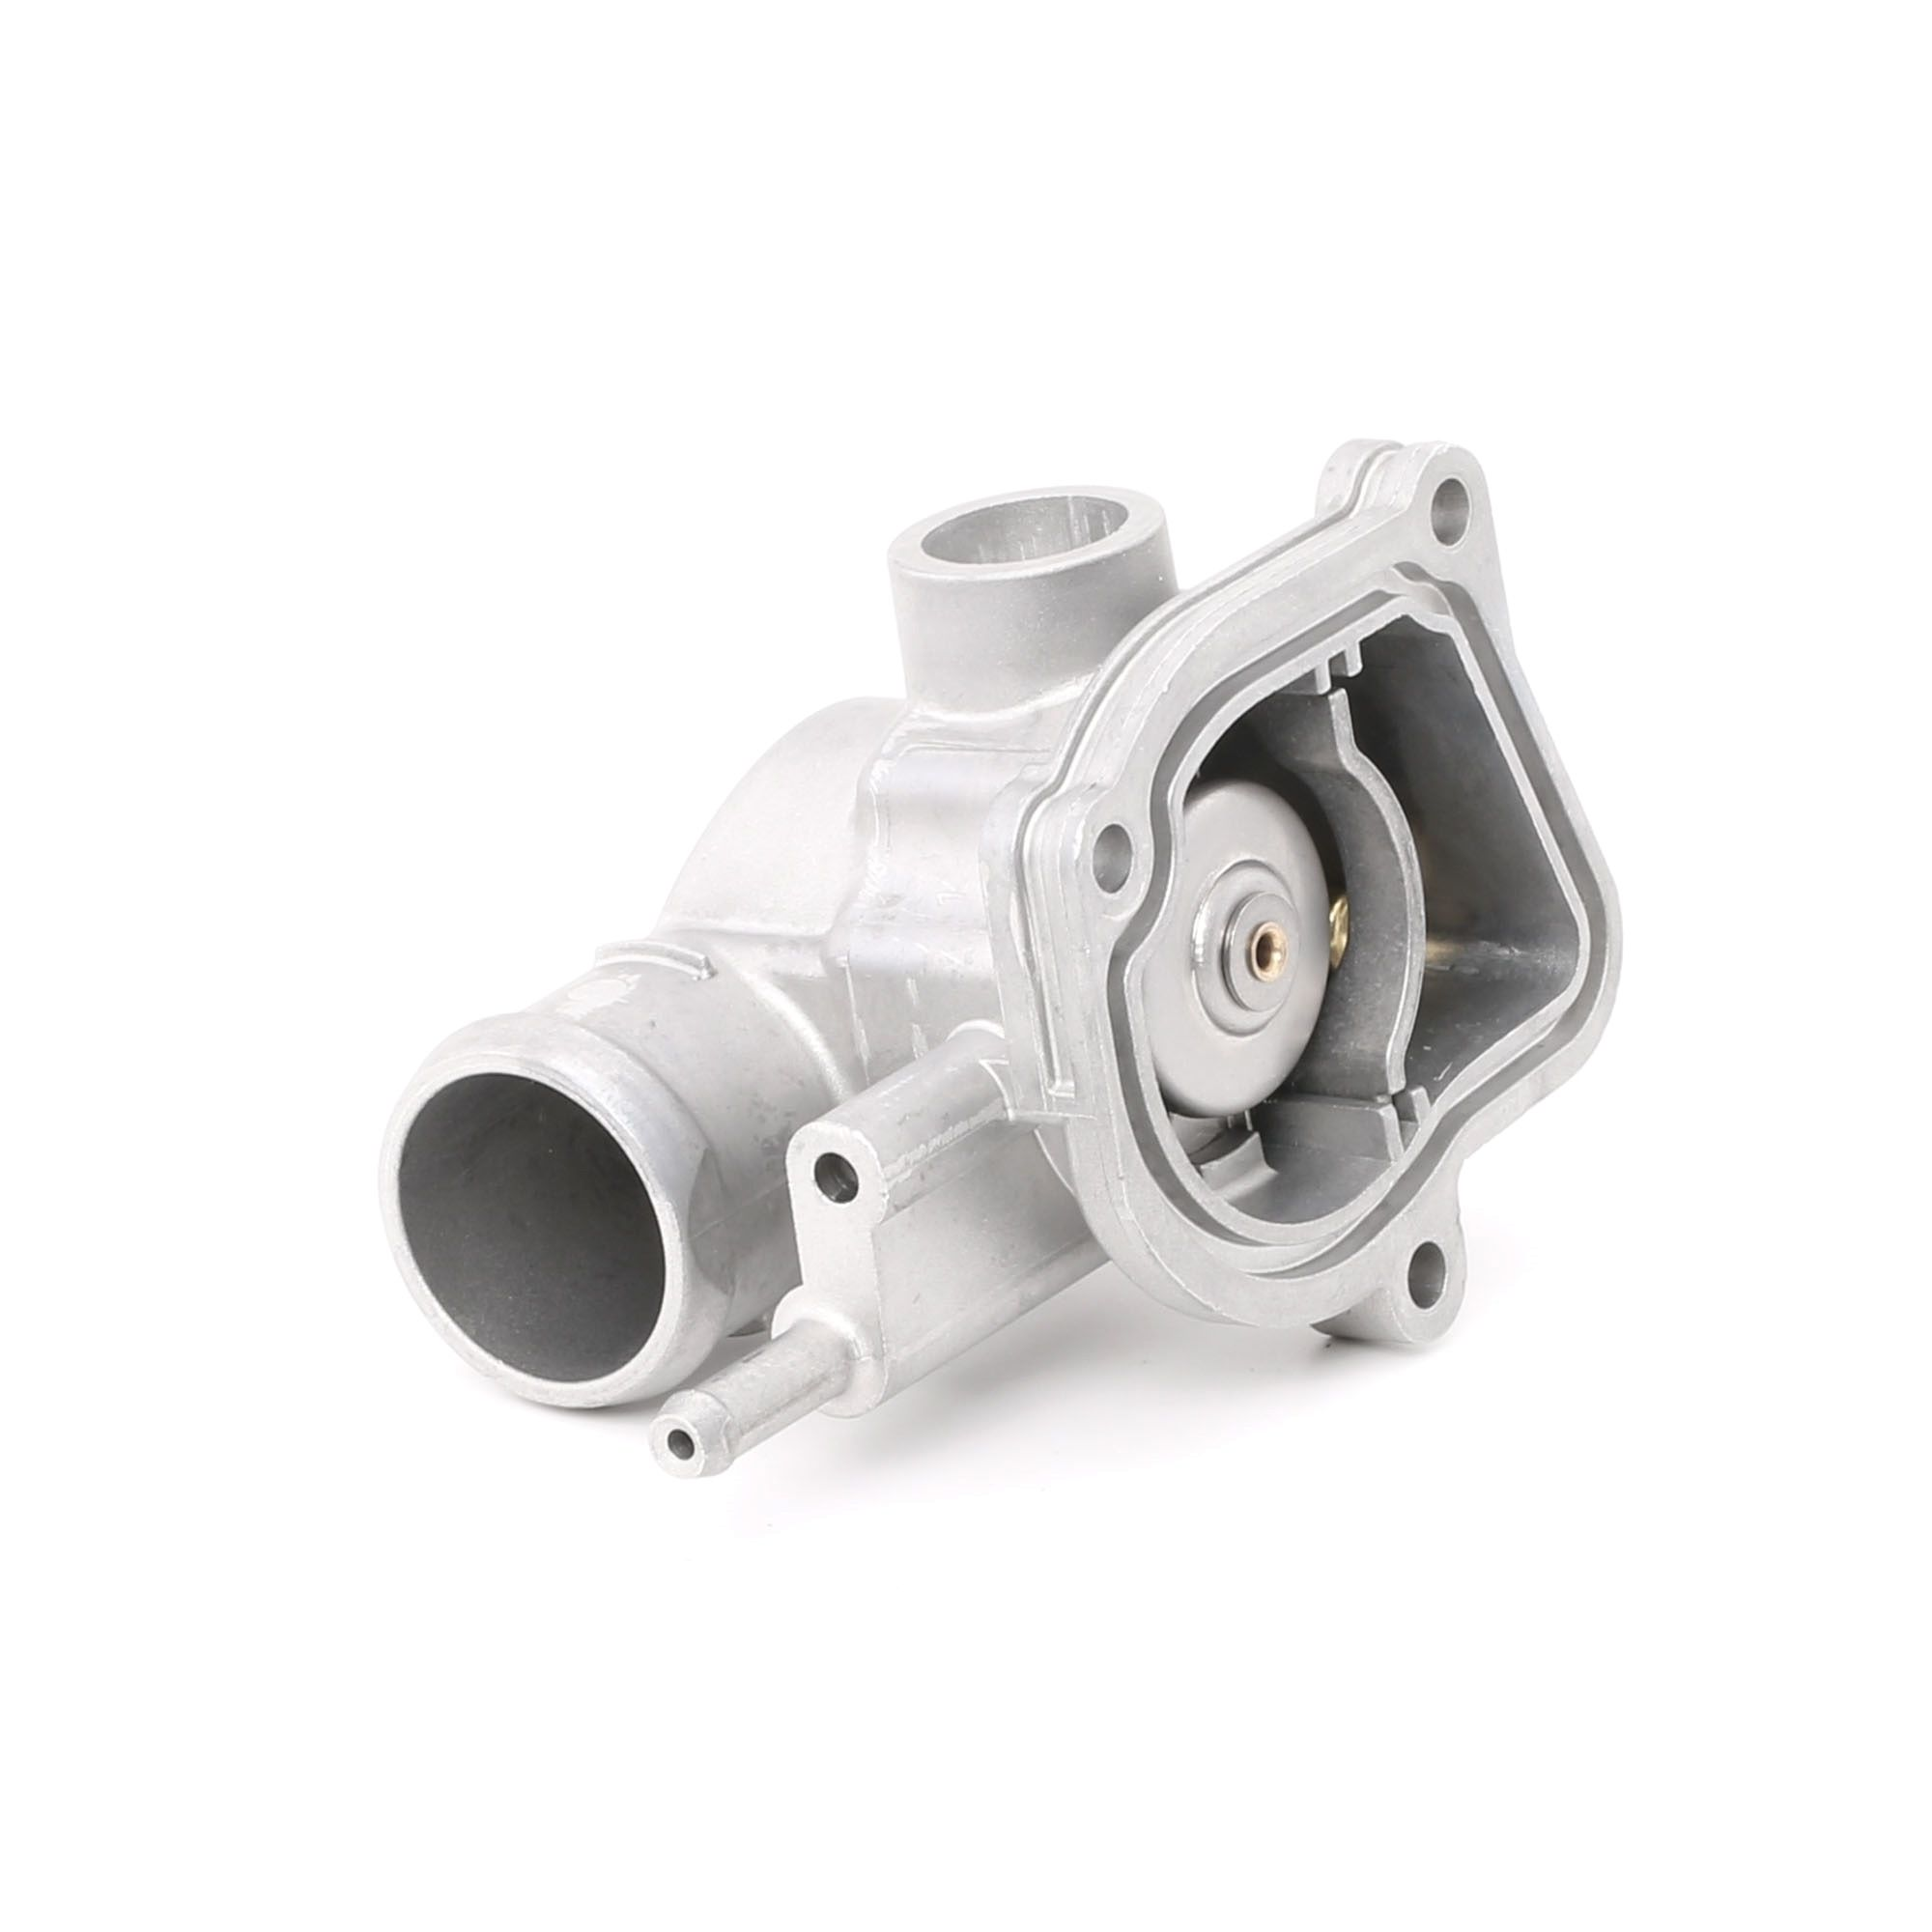 Image of CALORSTAT by Vernet Thermostat MERCEDES-BENZ TH6847.92J 6462000015,6462000715,6462000915 Radiator Thermostat,Engine Thermostat,Thermostat, coolant